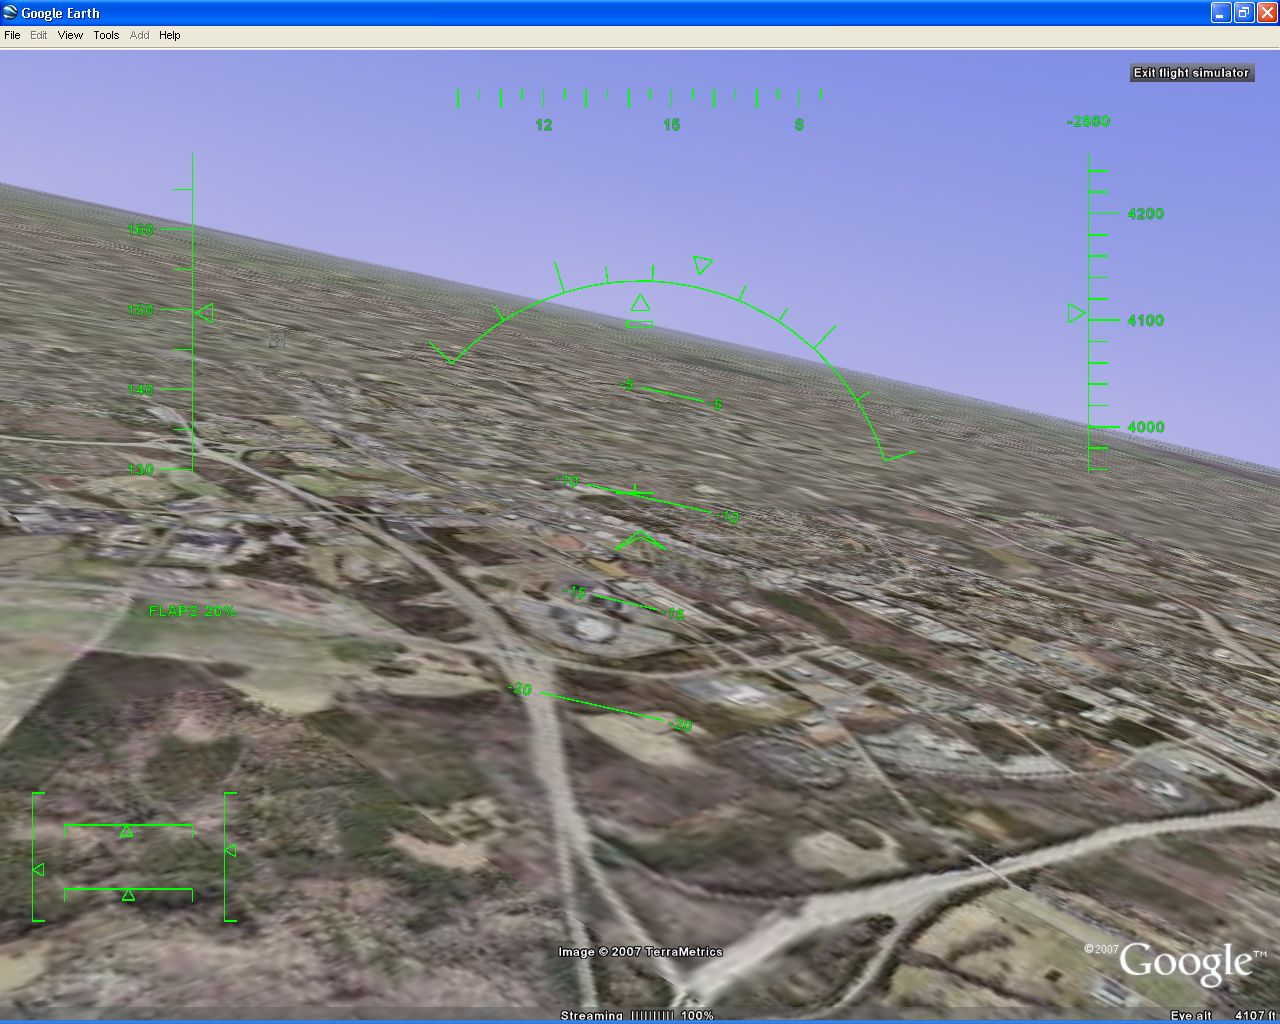 how to open flight simulator in google earth